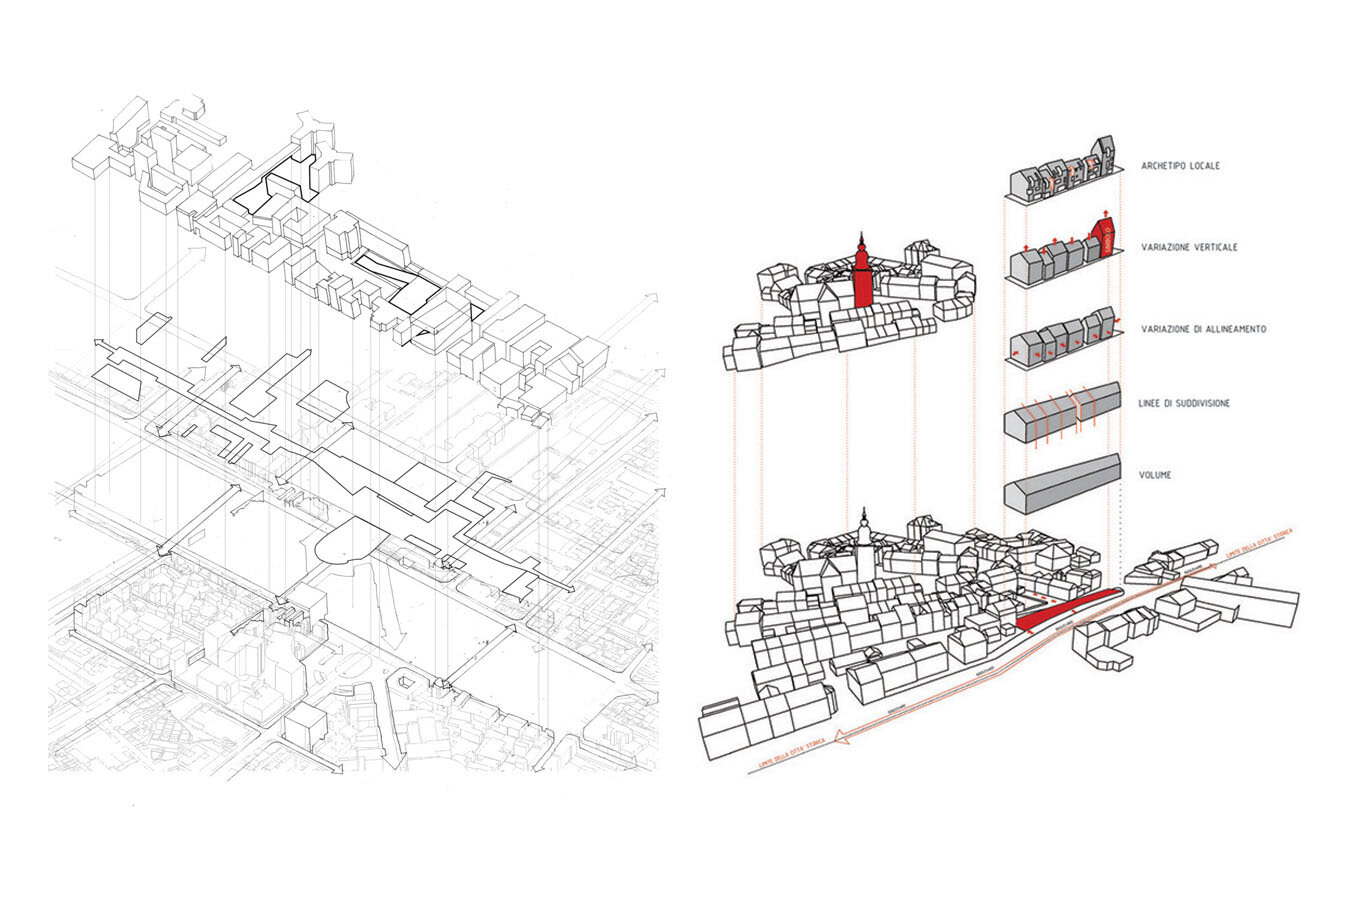 Types of architectural diagram contextual.jpg